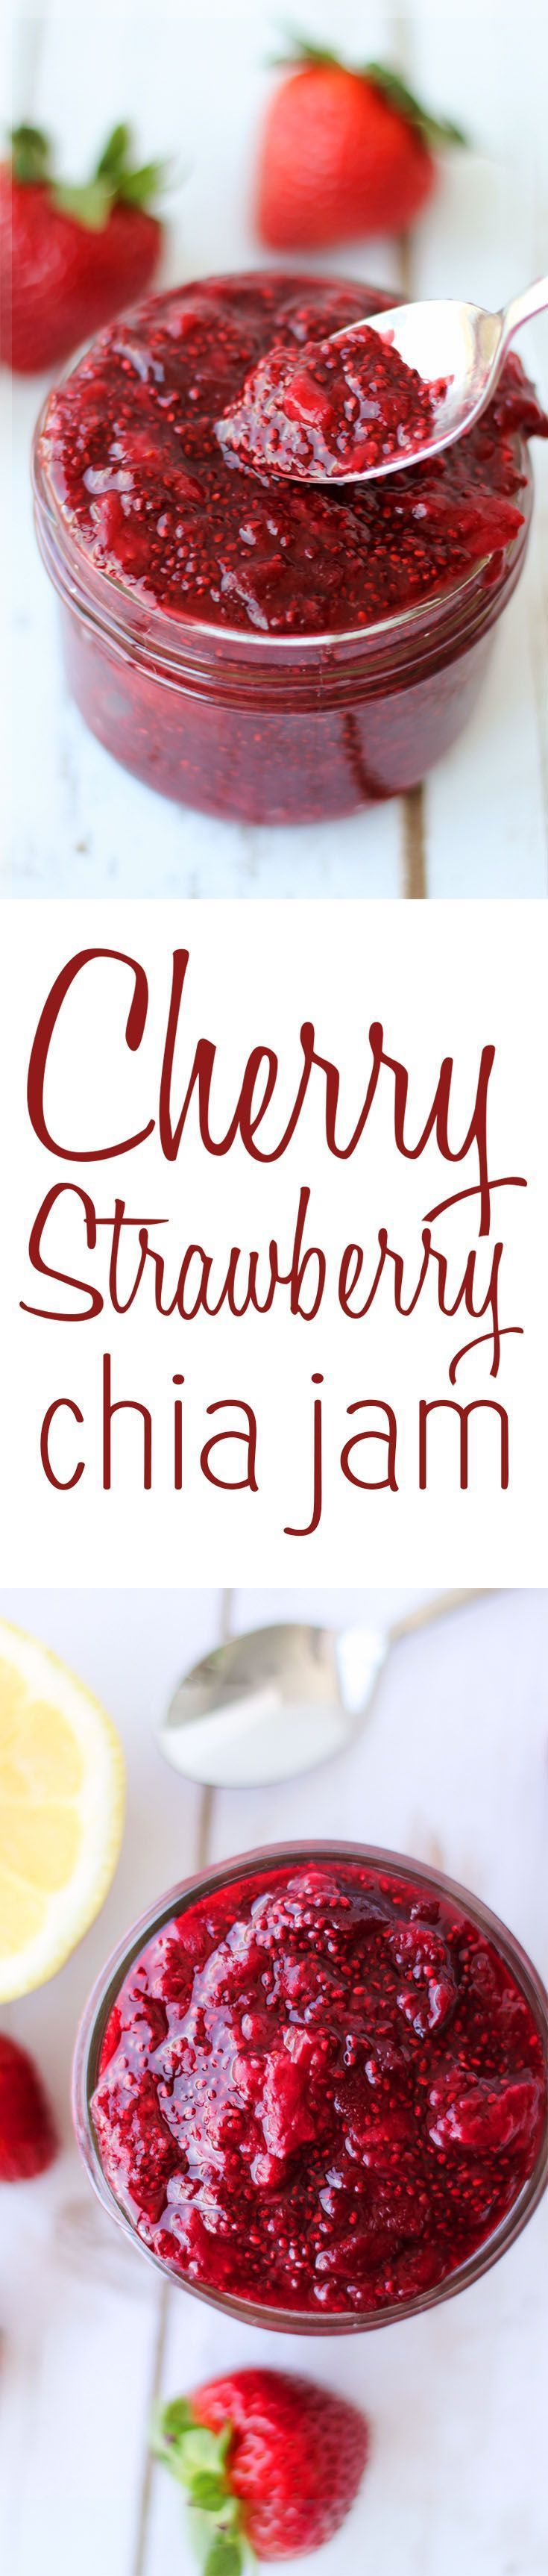 This healthy Cherry Strawberry Chia Jam will quickly become your go-to morning spread because its totally vegan, super healthy and low in added sugar!